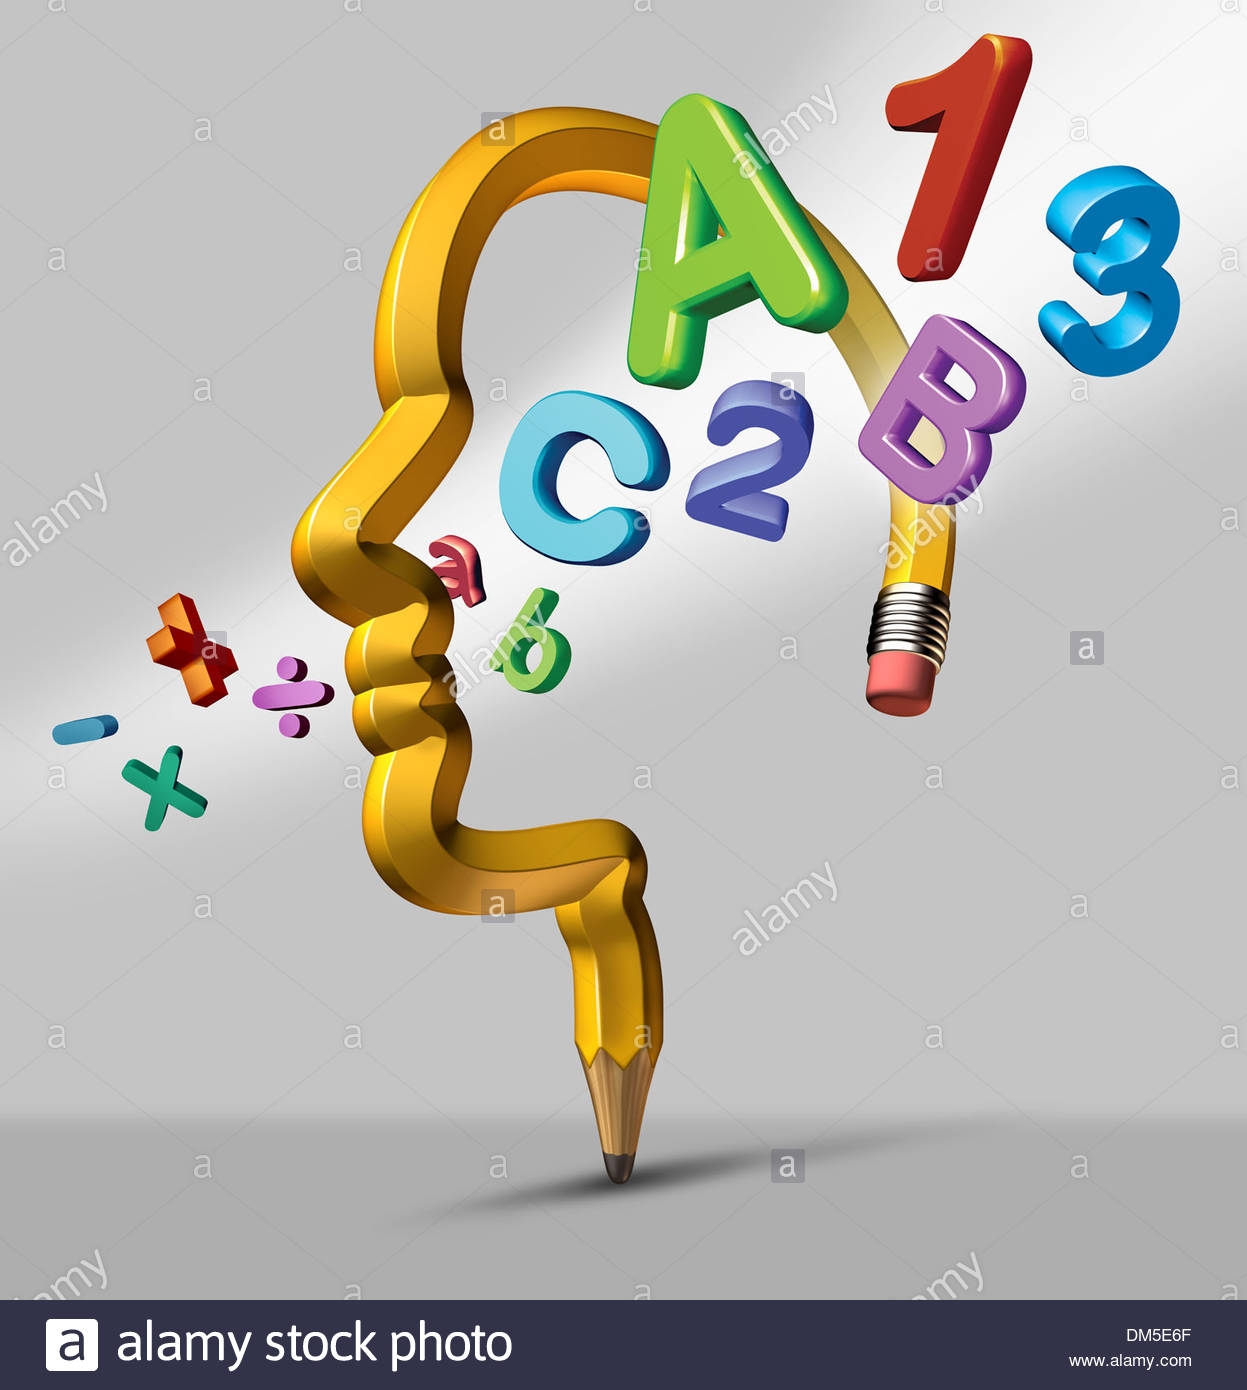 1247x1390 Math Symbols Stock Photos Amp Math Symbols Stock Images